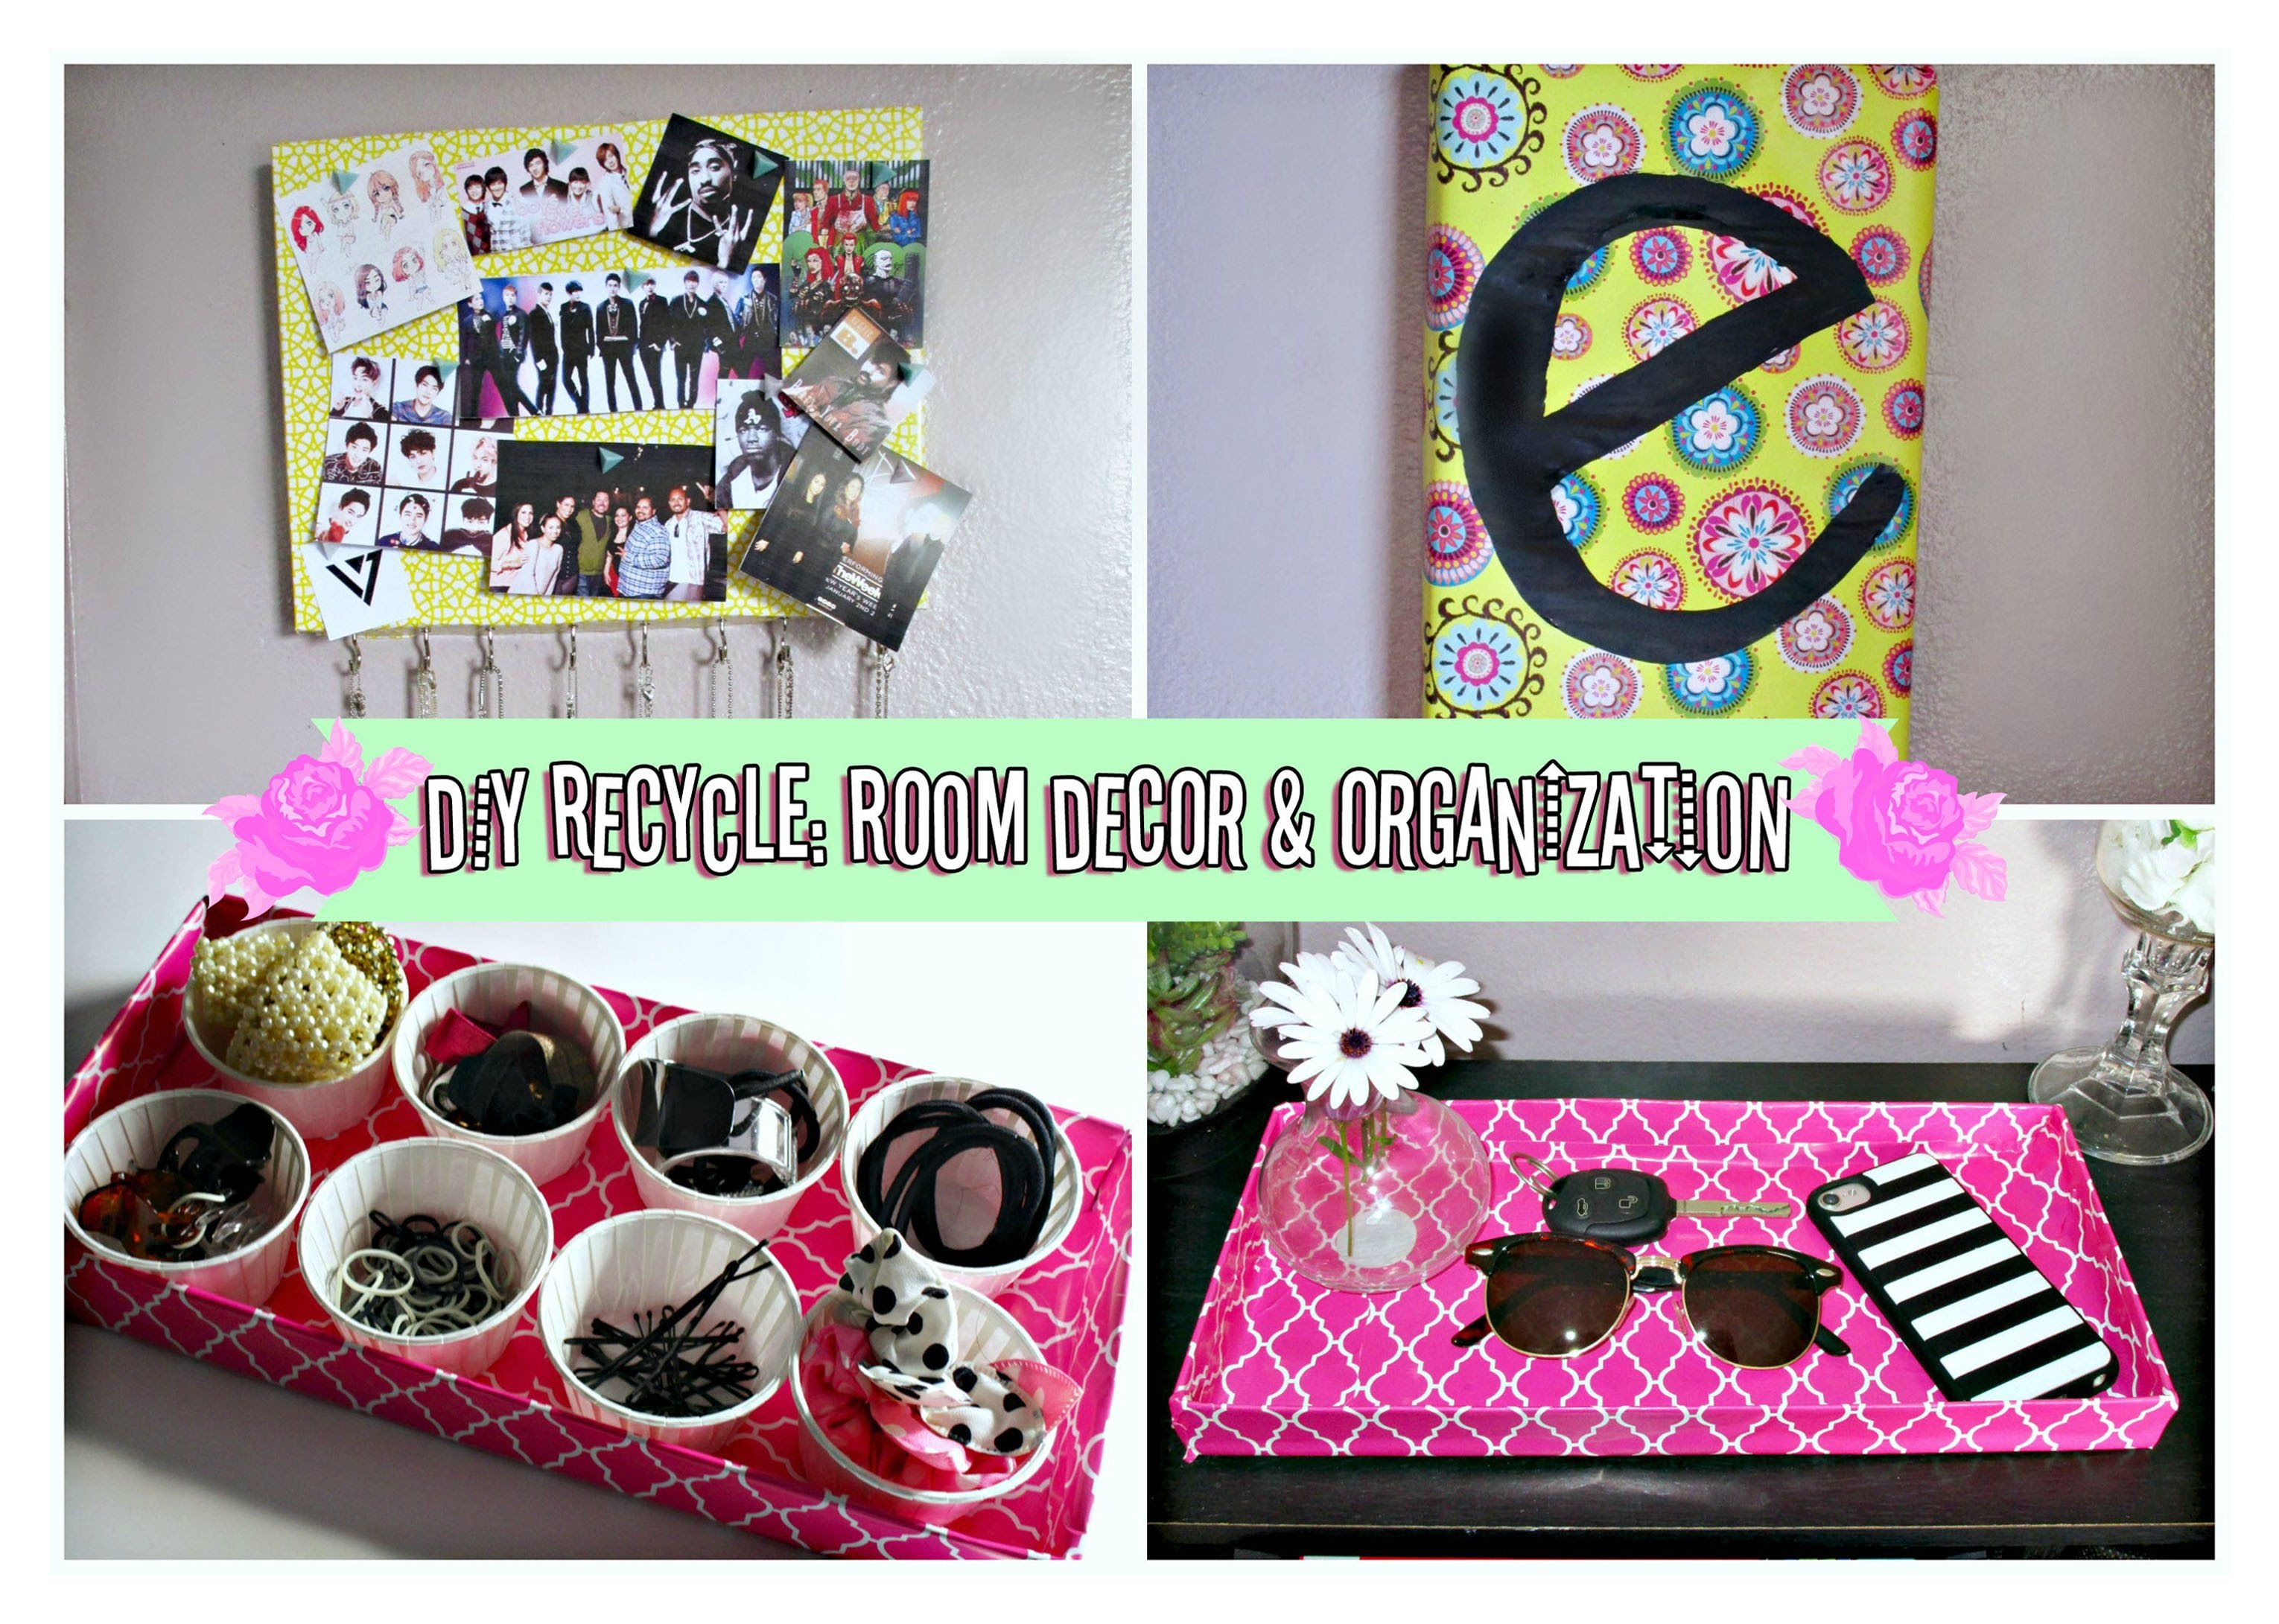 Shoe Box Decoration Ideas Diy Room Decor & Organization Ideas For Spring Recycling Shoe